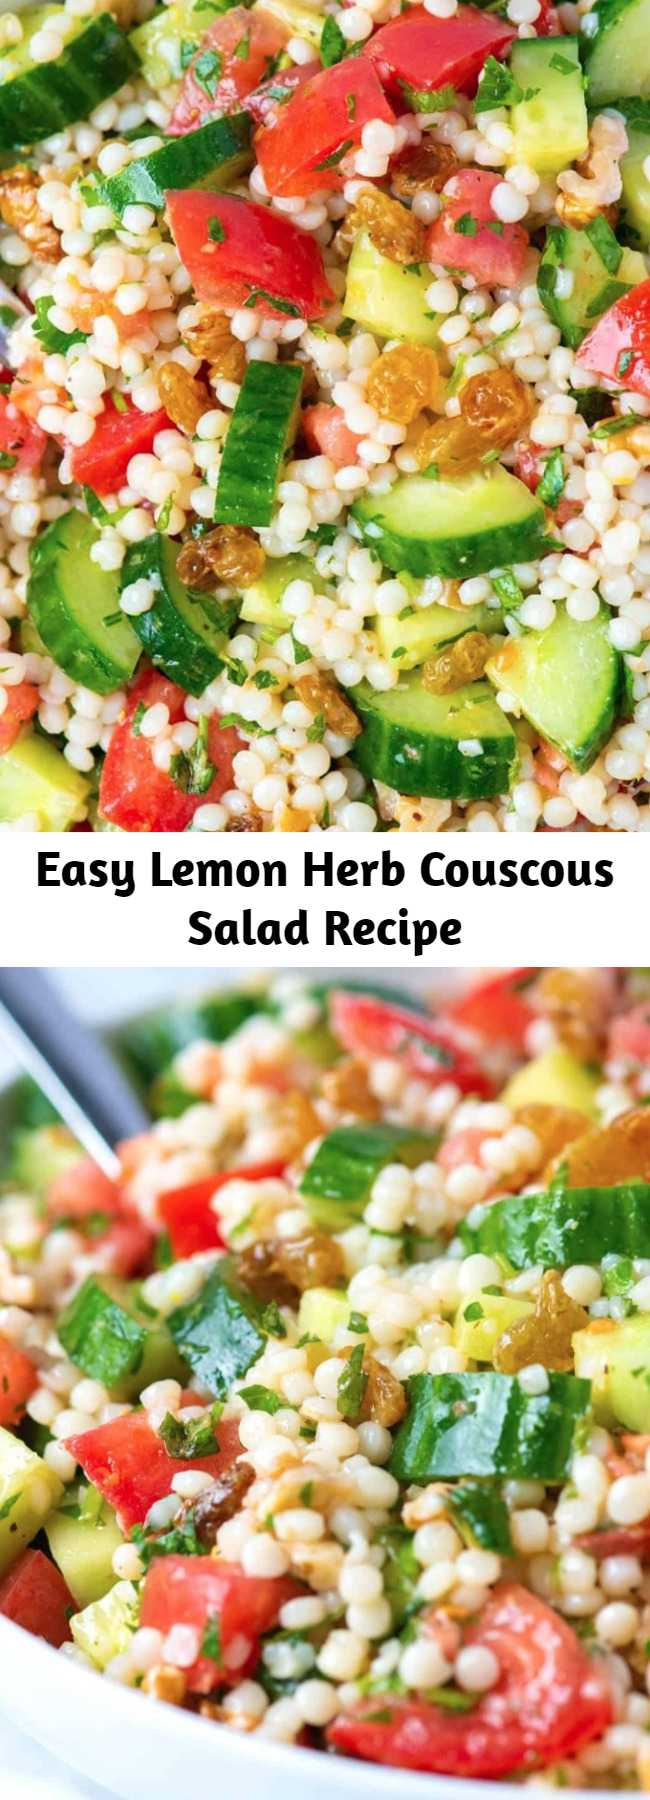 Easy Lemon Herb Couscous Salad Recipe - We love this light couscous salad — it doubles as a side, can be the main event or works well topped with grilled chicken or Adam's favorite, shrimp! With lots of texture from crisp cucumber, sweet tomatoes, crunchy nuts and raisins, this is certainly one of our favorites. You can even make it ahead of time.